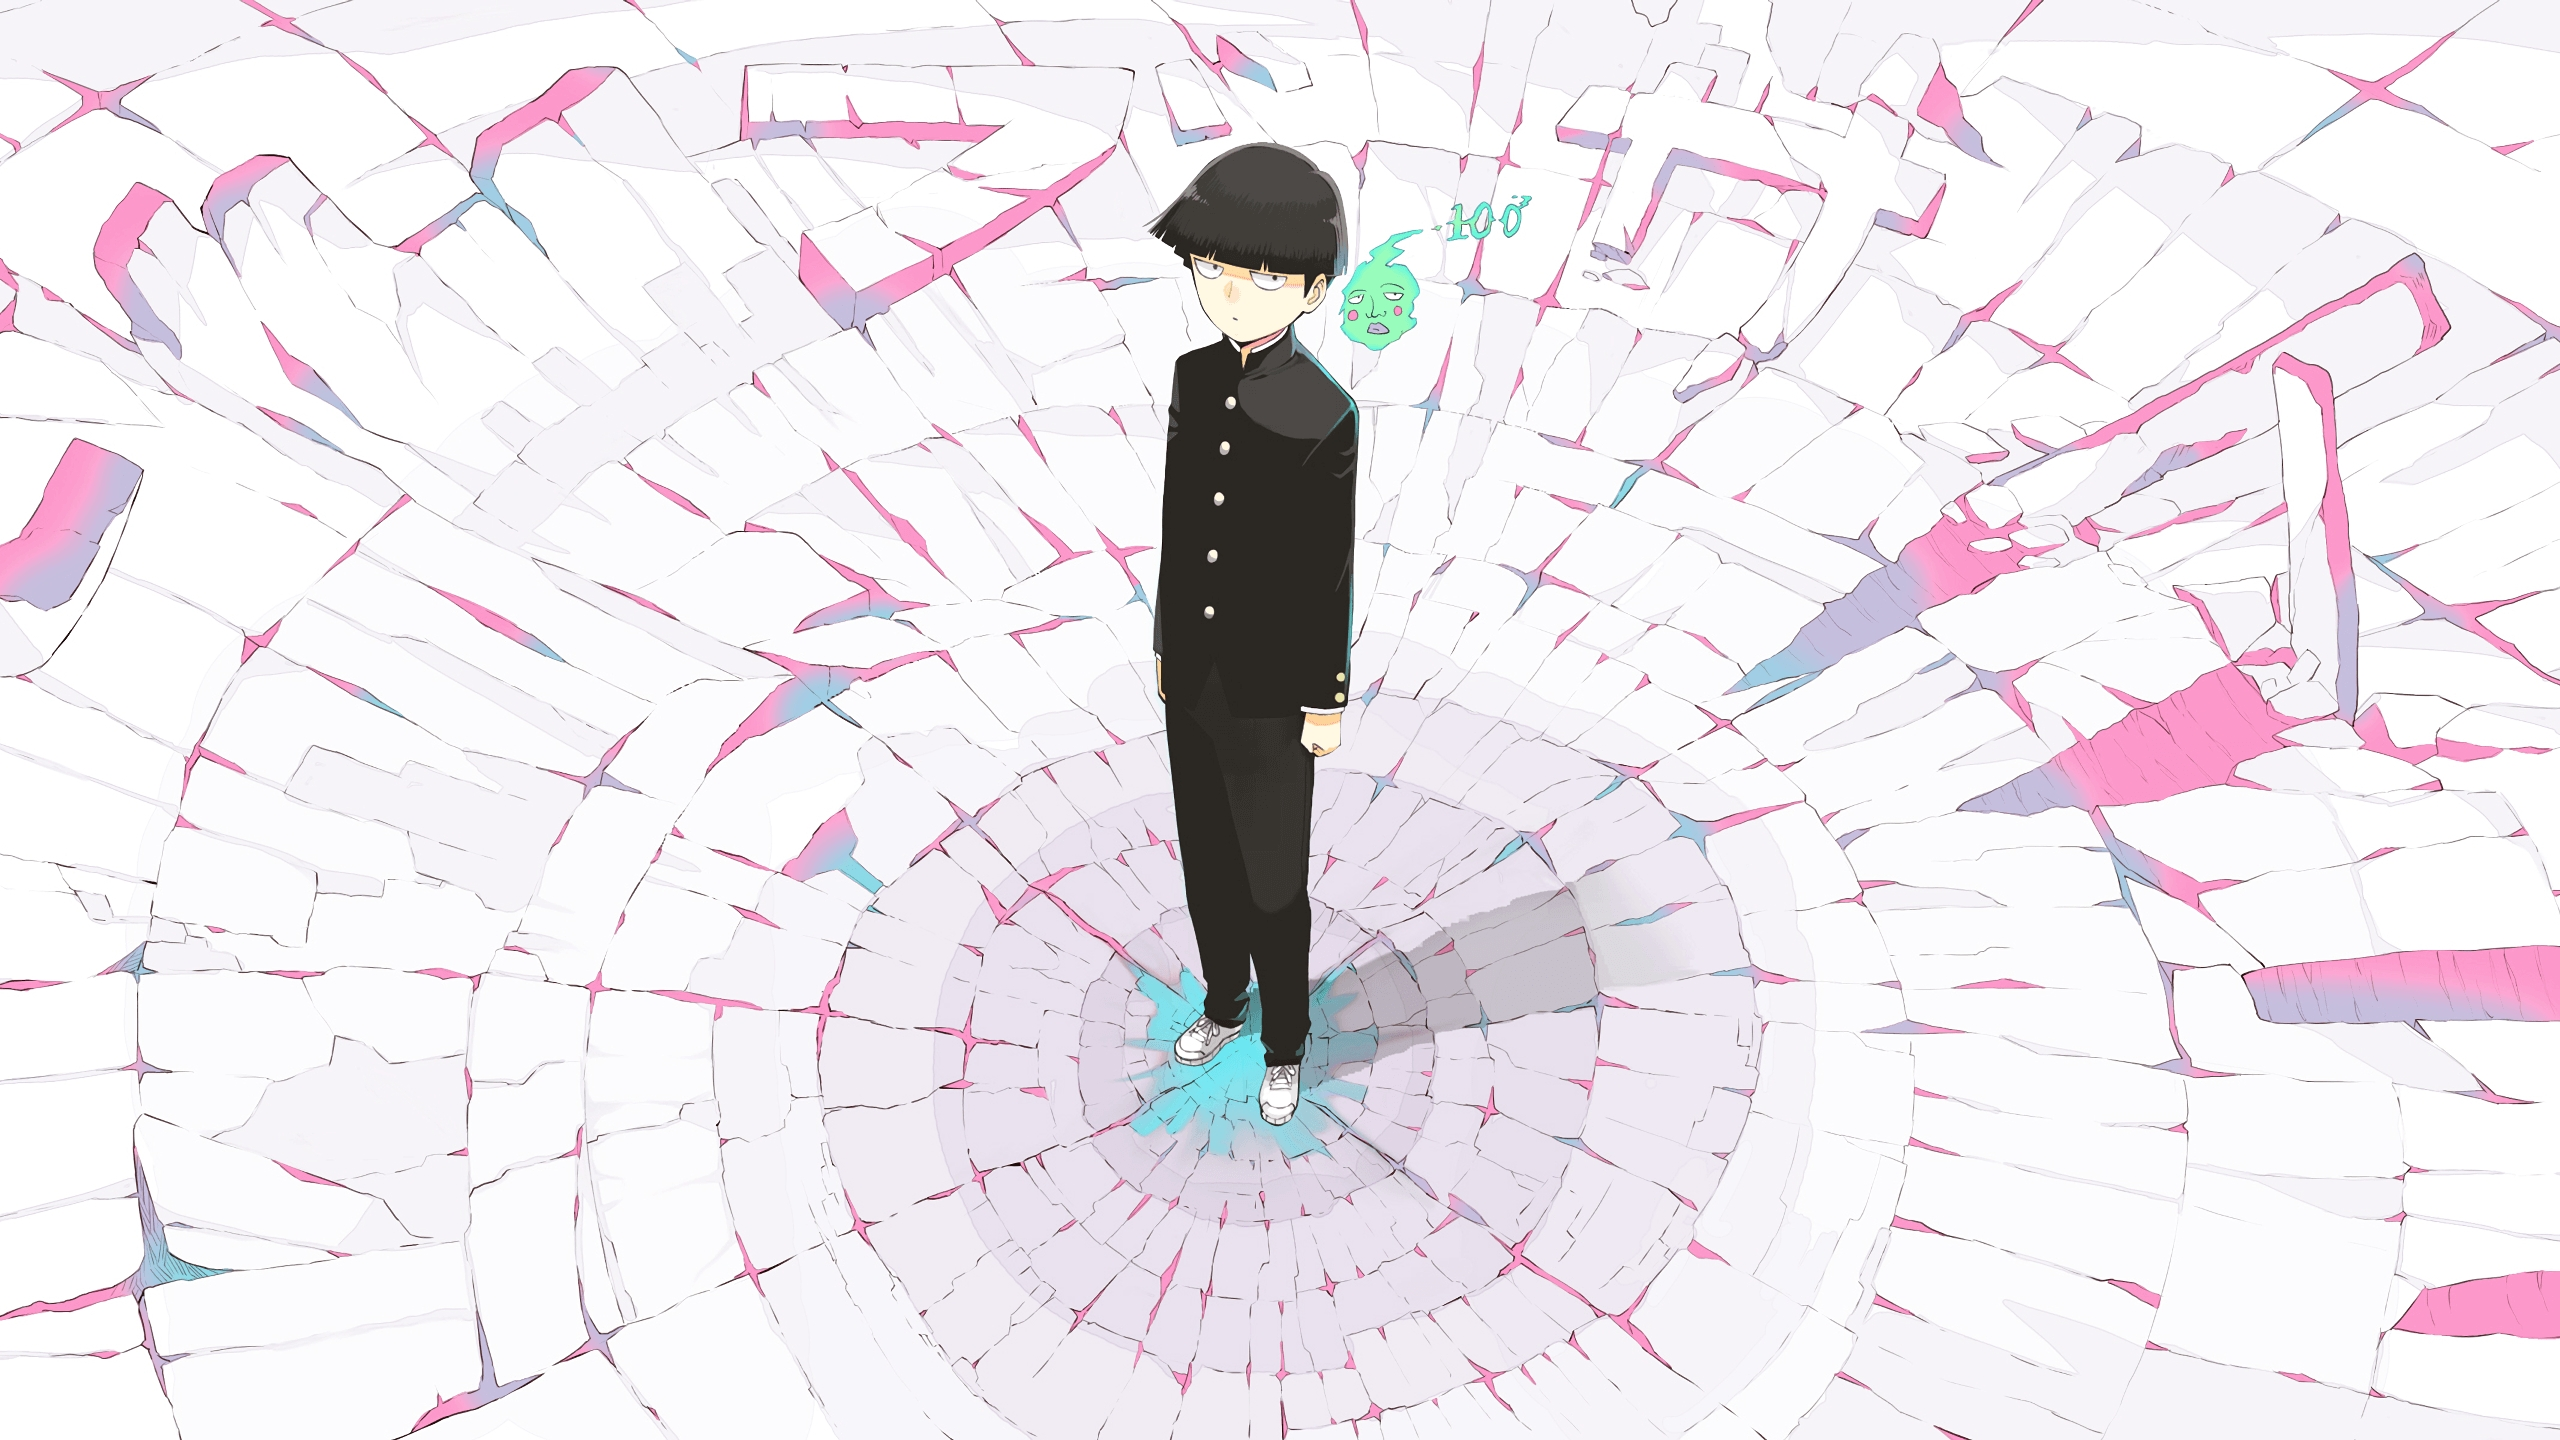 mob psycho 100 wallpapers - wallpaper cave